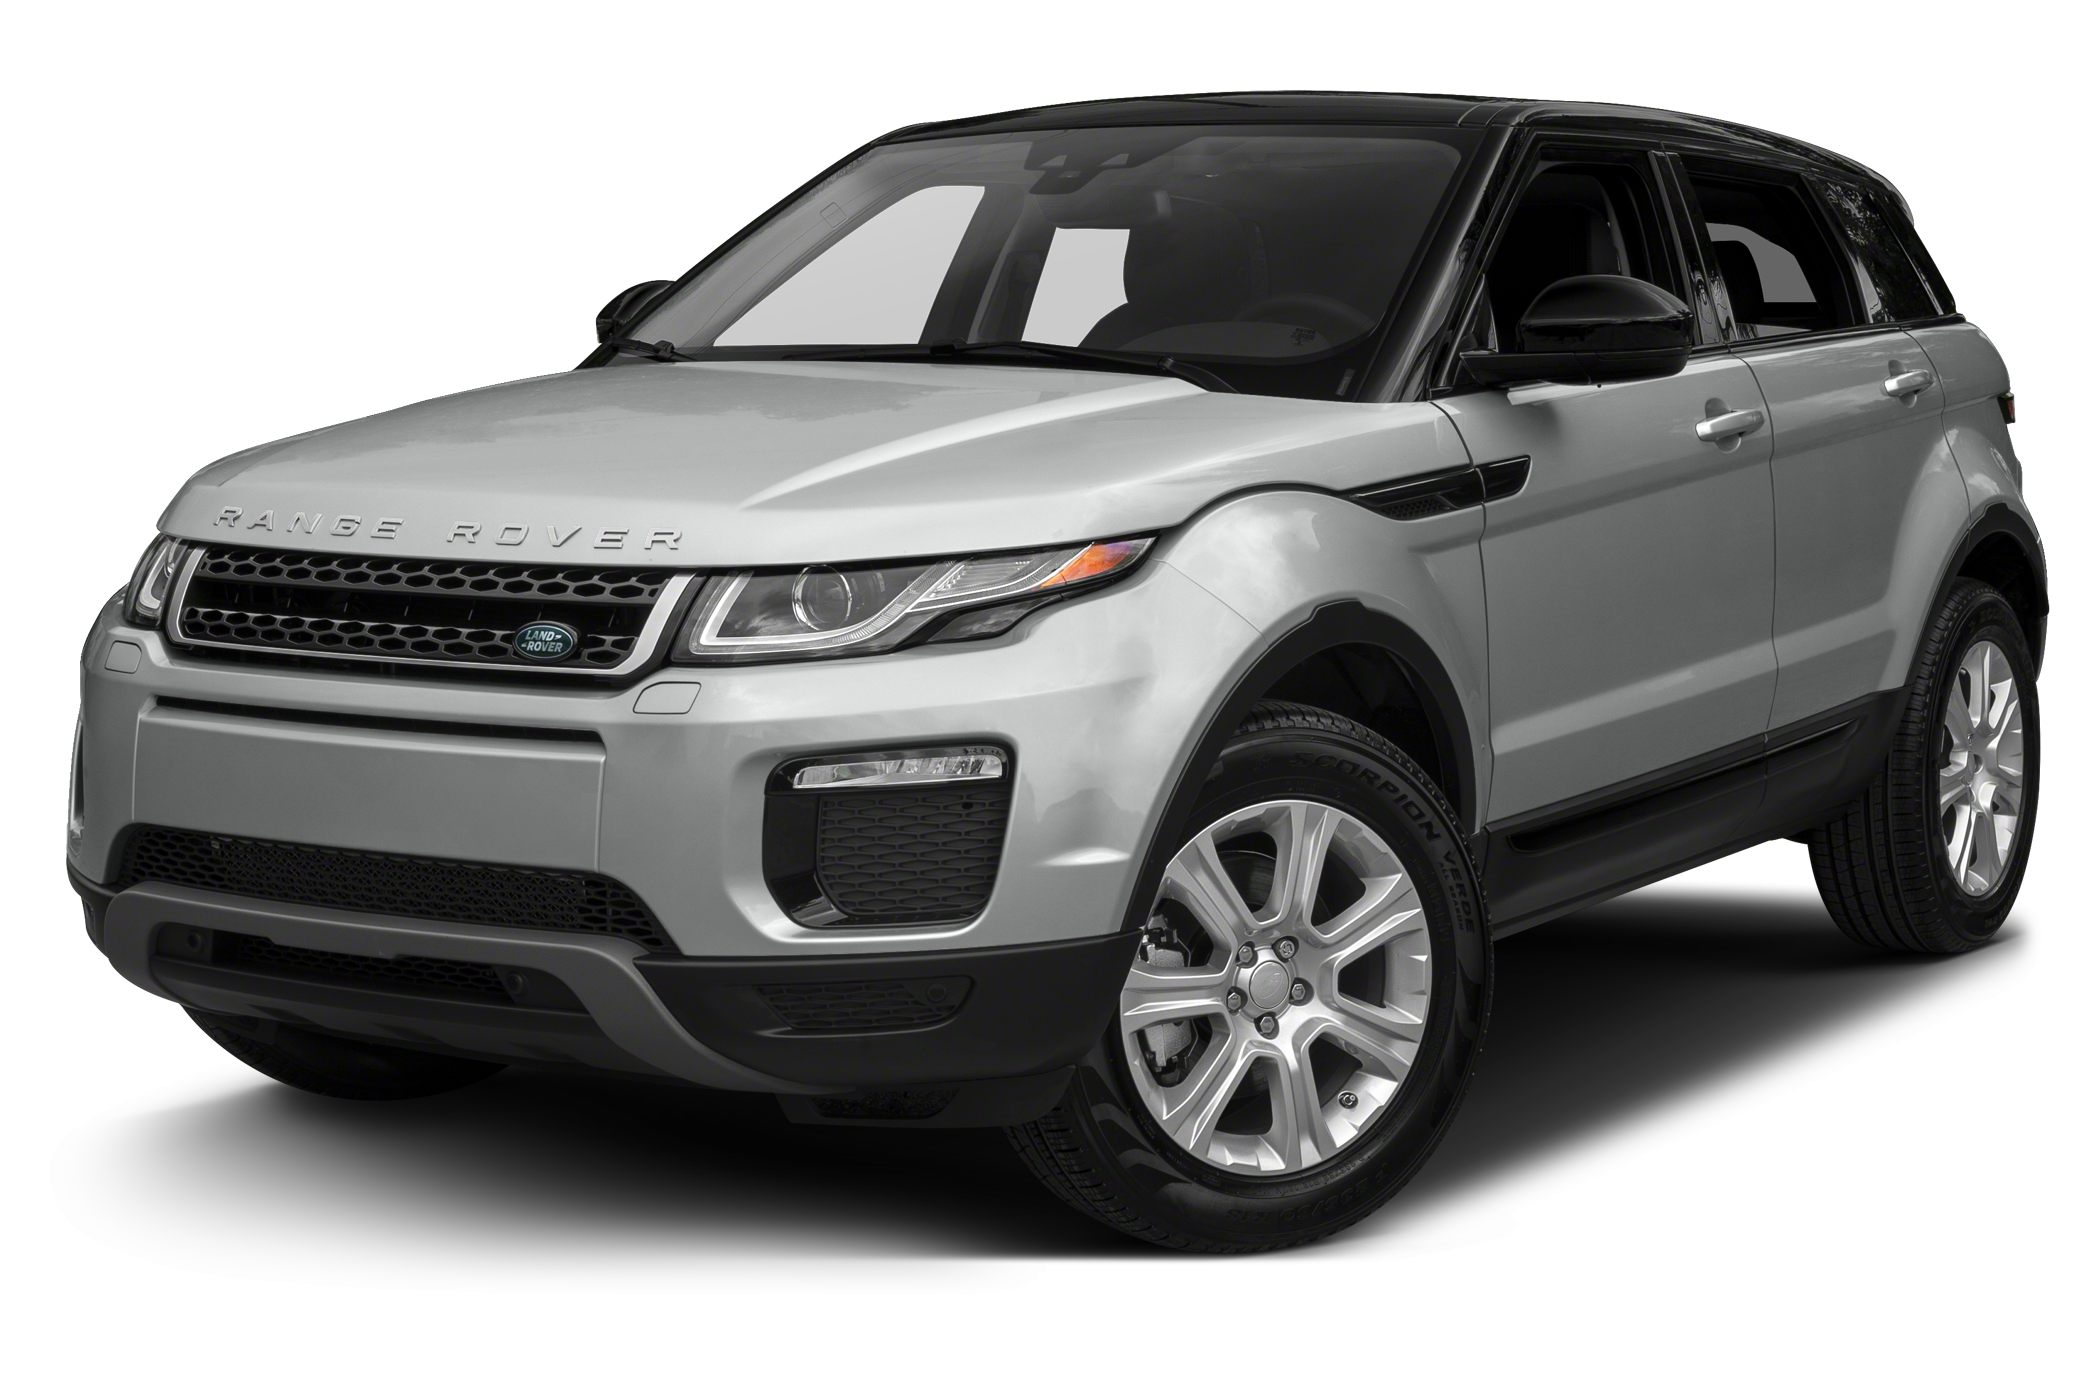 2017 land rover range rover evoque se pure prices specifications in uae. Black Bedroom Furniture Sets. Home Design Ideas